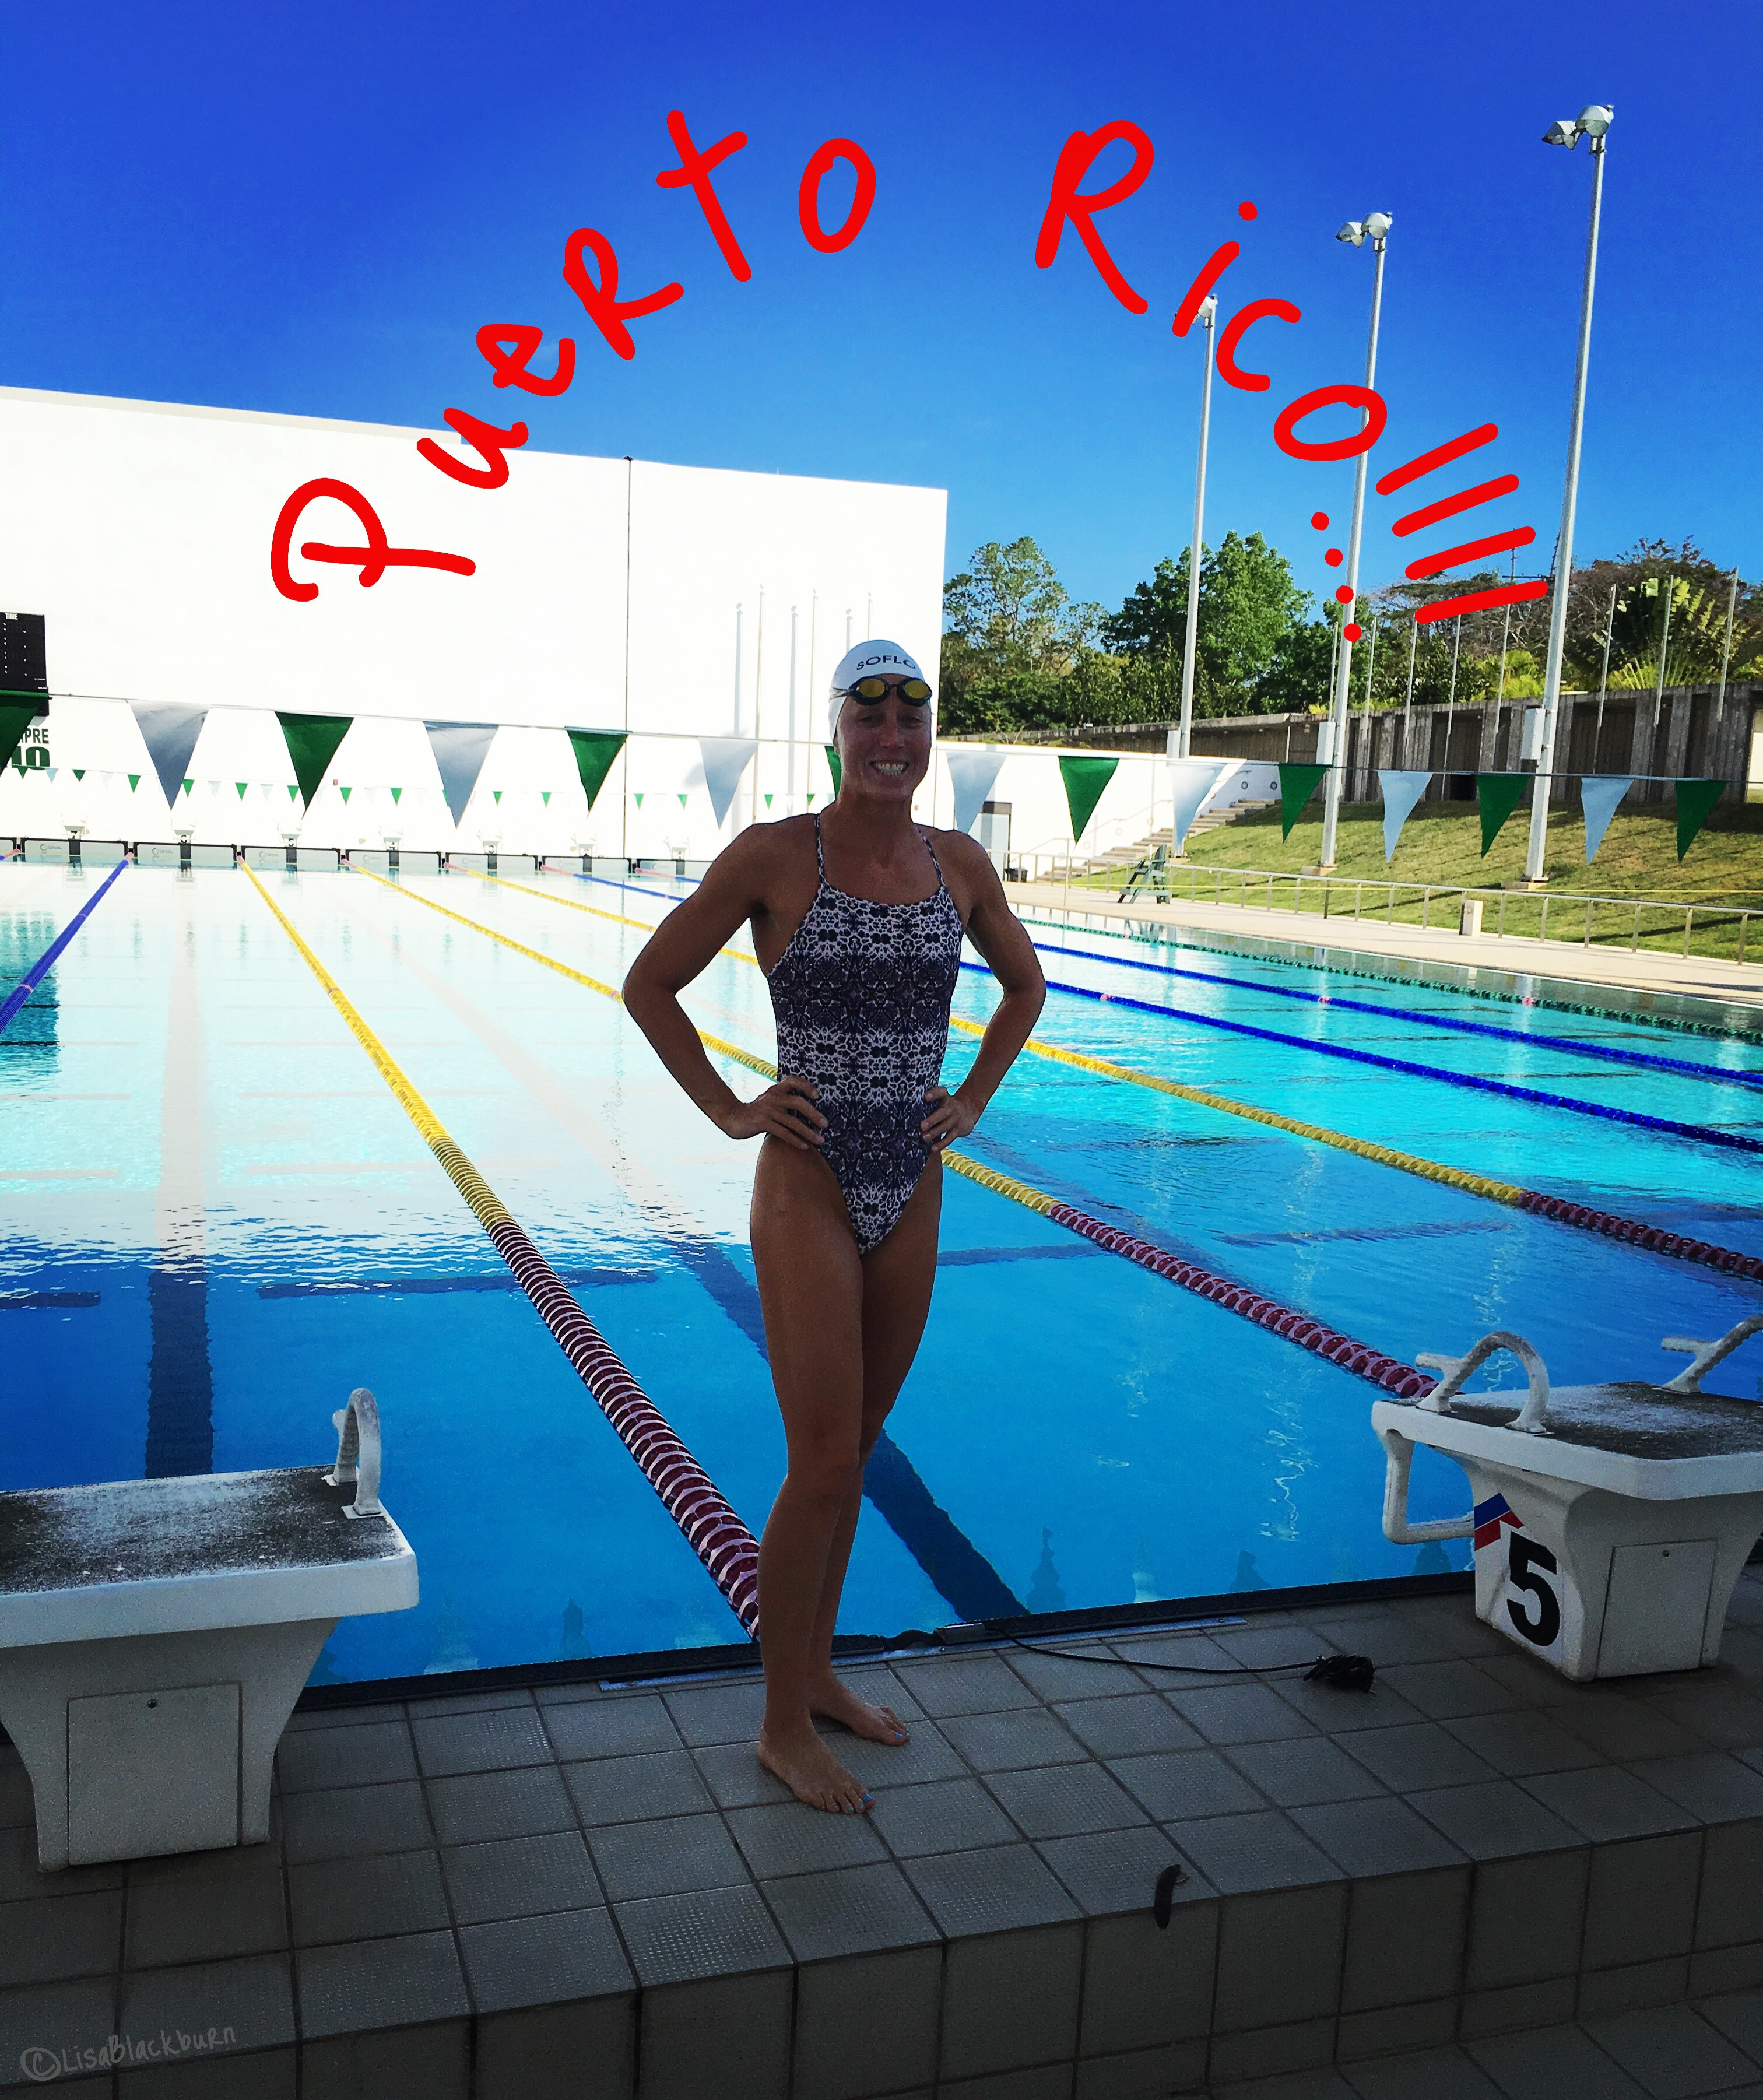 Swim meet lisa blackburn 39 s blog - Blackburn swimming pool opening times ...